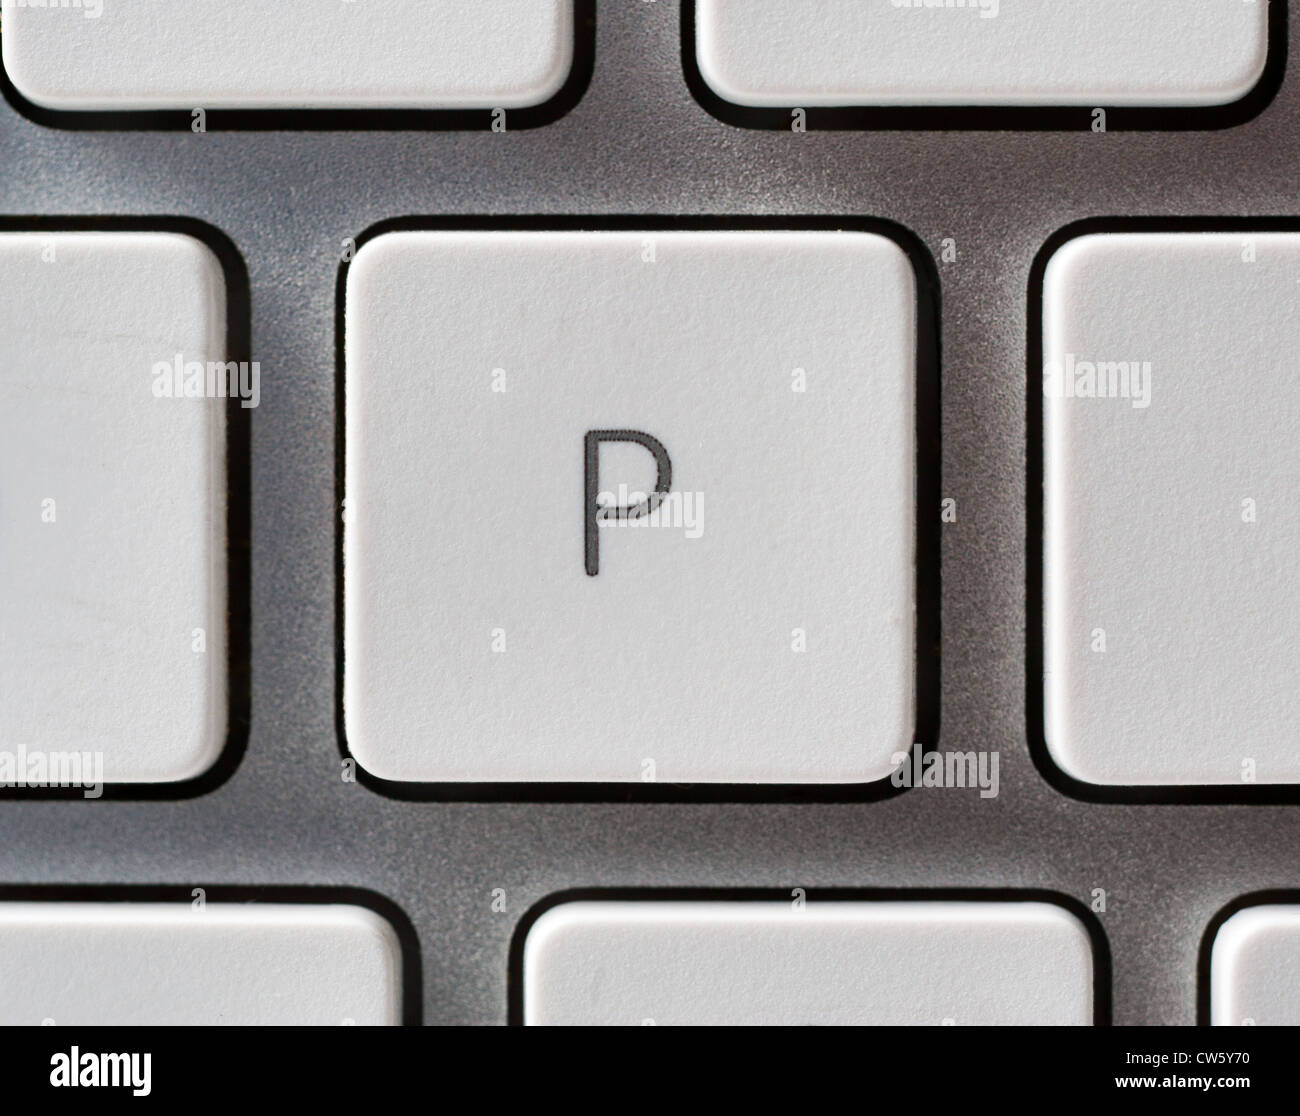 Letter P on an Apple keyboard - Stock Image